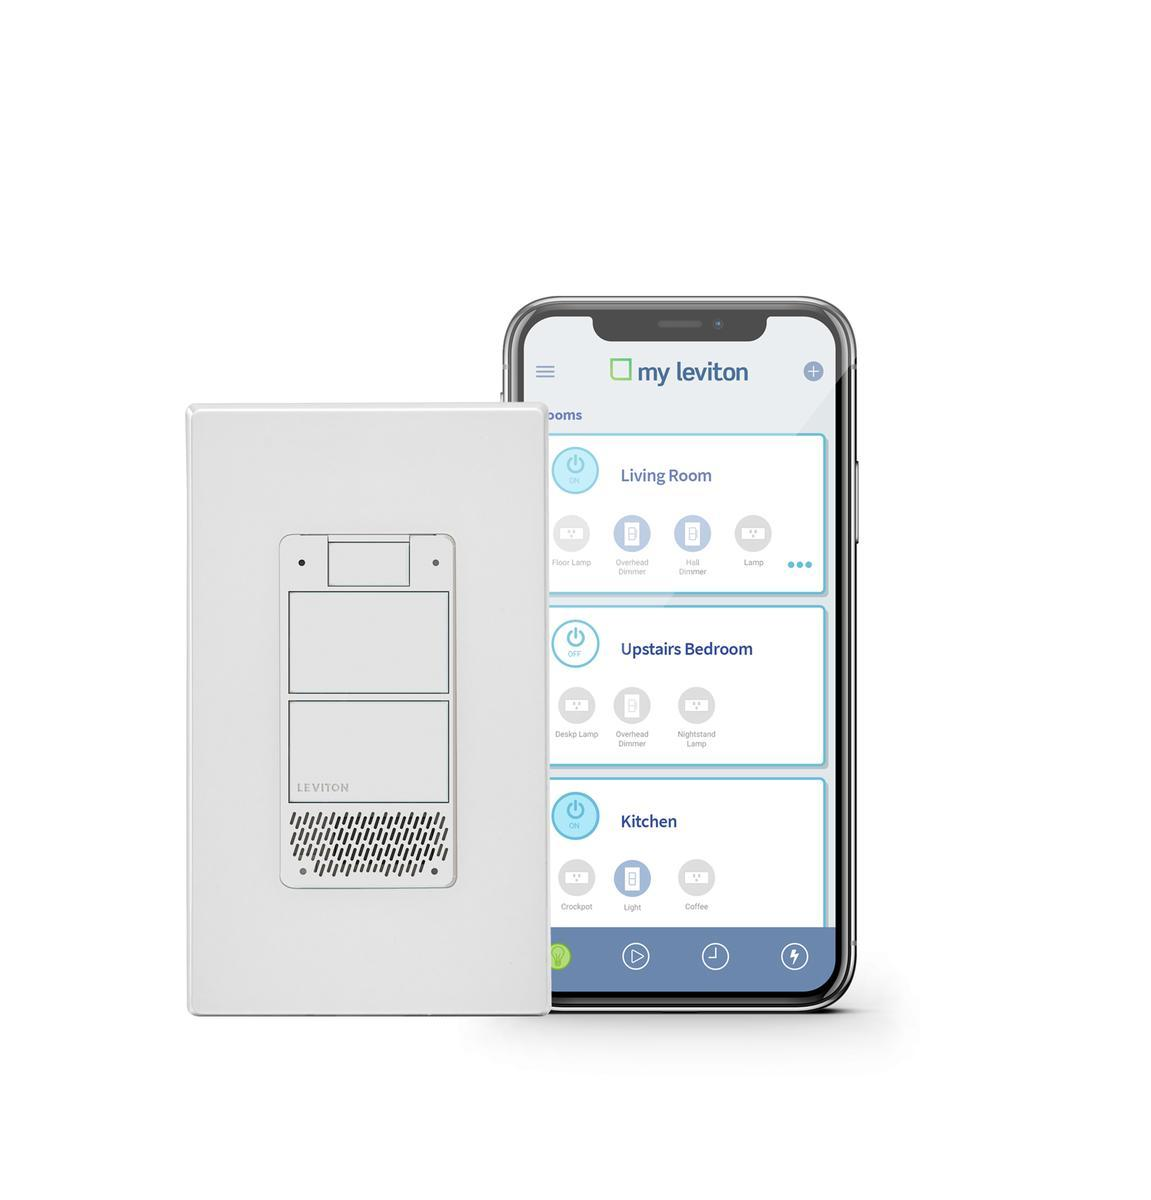 Leviton puts Alexa in a light switch